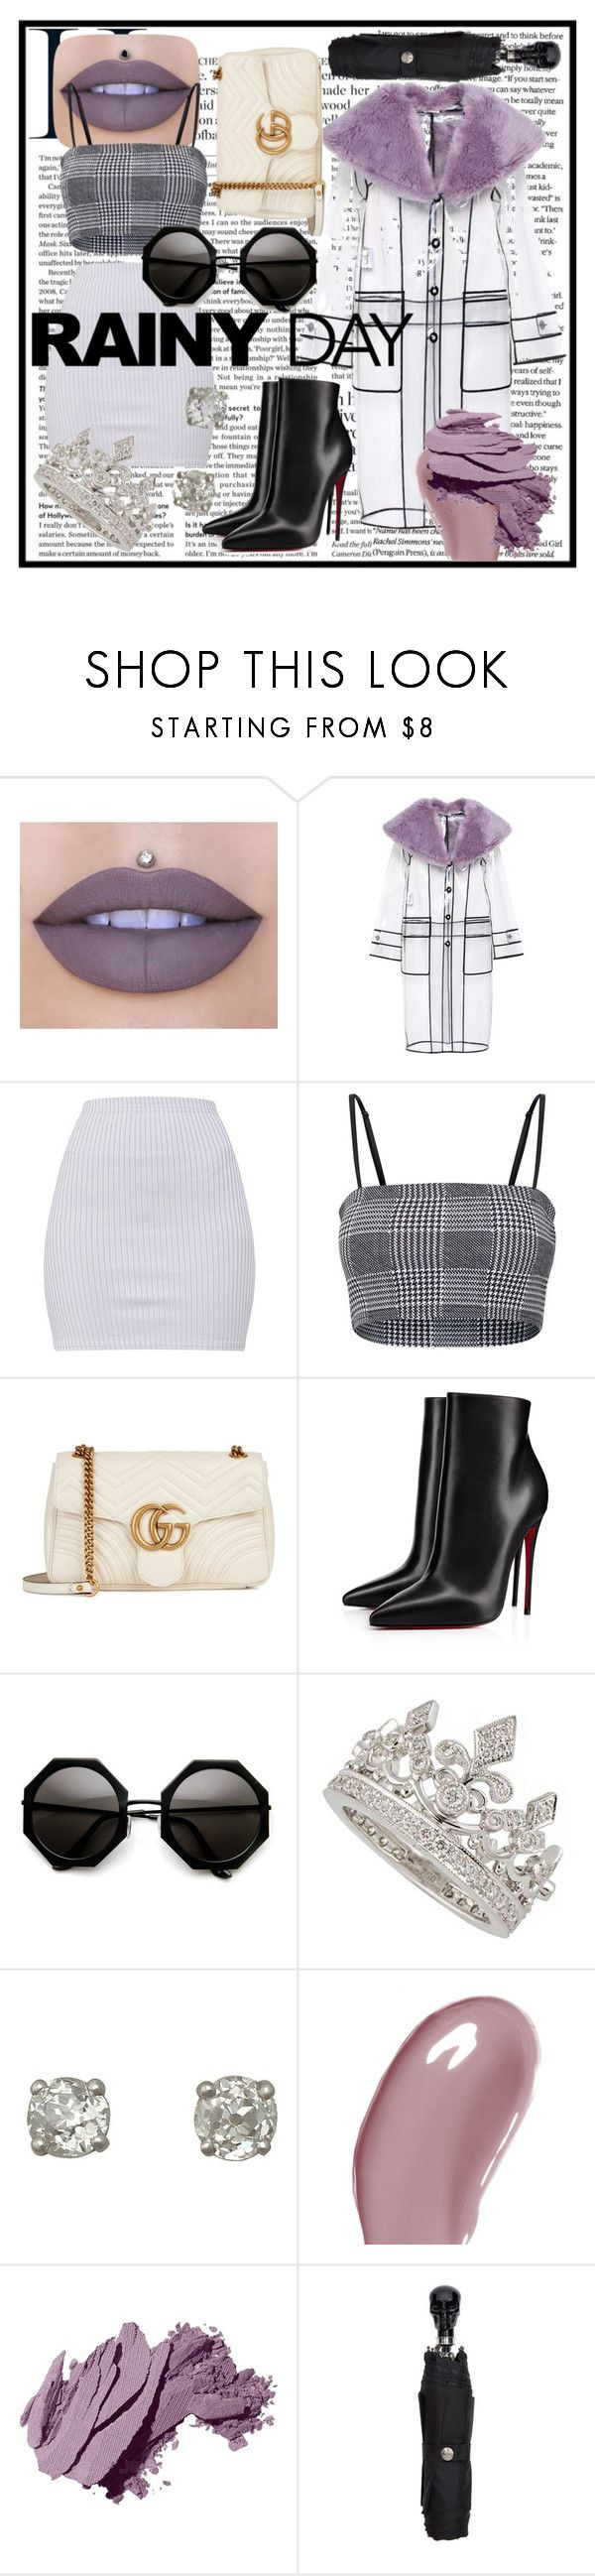 """Rainy Day"" by the-sartorial-sparkle ❤ liked on Polyvore featuring Jeffree Star, Miu Miu, Gucci, Christian Louboutin, Garrard, Chantecaille, Bobbi Brown Cosmetics and Alexander McQueen"